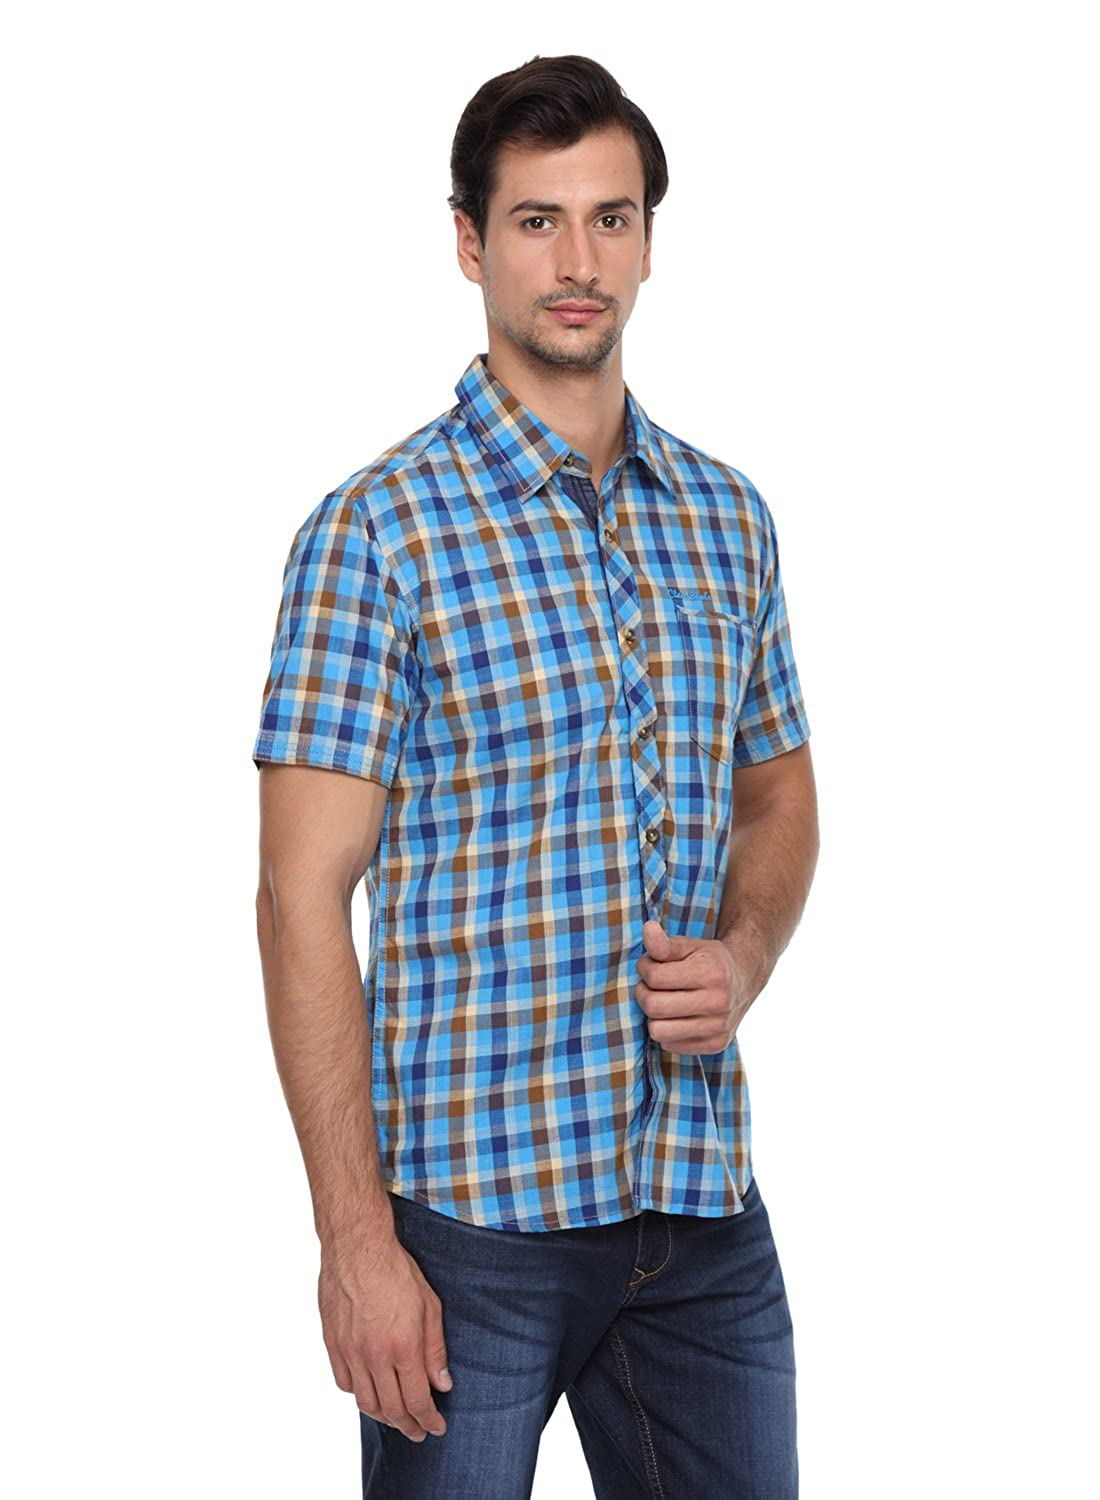 eaf3529f05 Classic Polo 100% Cotton Men's Medium Checks Half Sleeves Slim Fit Casual  Shirt: Amazon.in: Clothing & Accessories